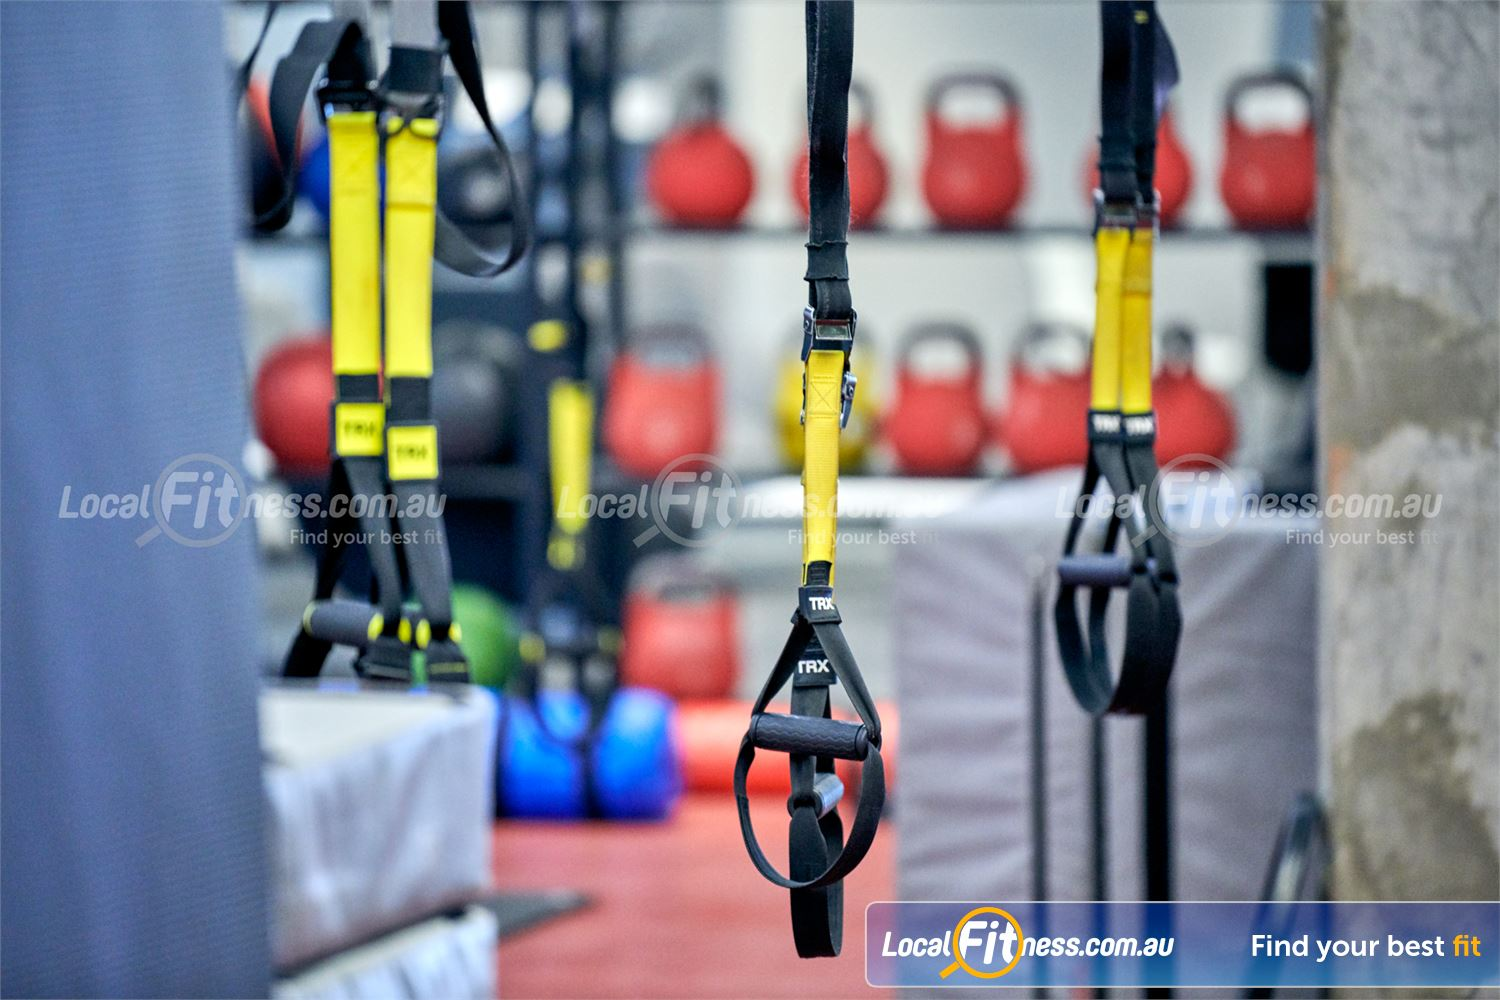 Fitness First Platinum The Zone King St Sydney Zone 1 helps coordination, balance, flexibility and stability through dynamic movement.